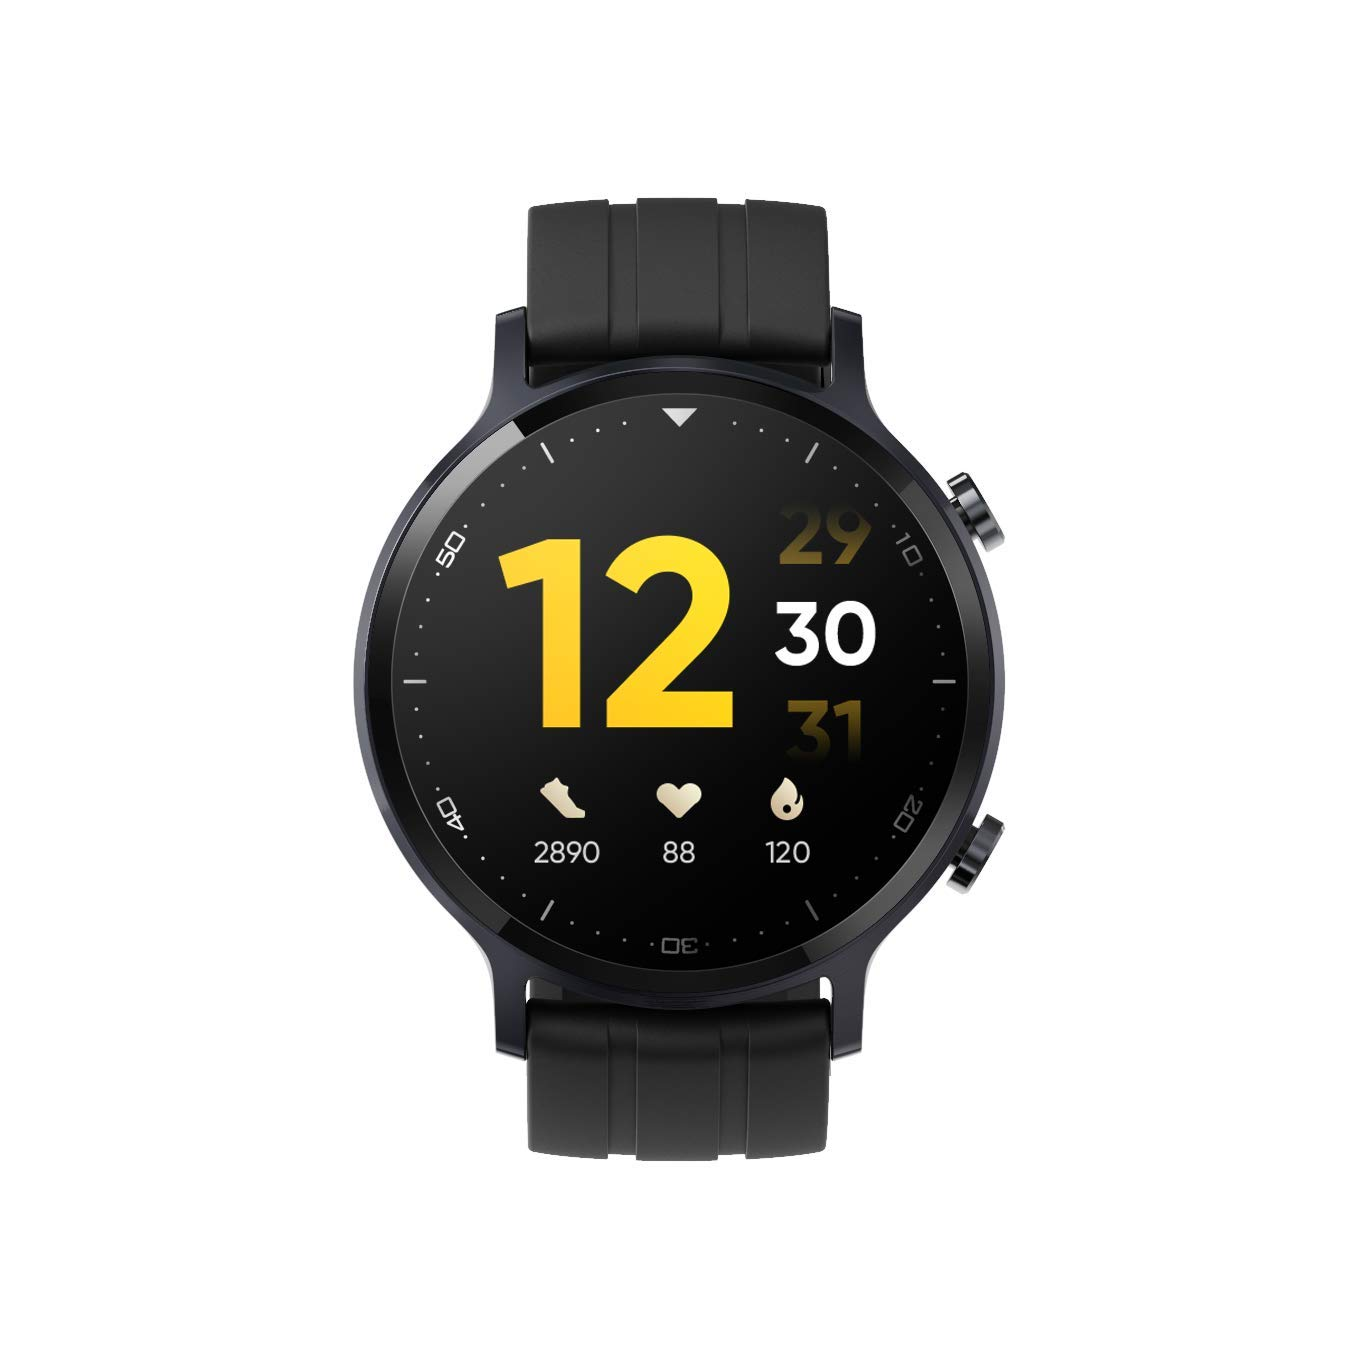 "realme Watch S with 1.3"" TFT-LCD Touchscreen, 15 Days Battery Life, SpO2 & Heart Rate Monitoring, IP68 Water Resistance"